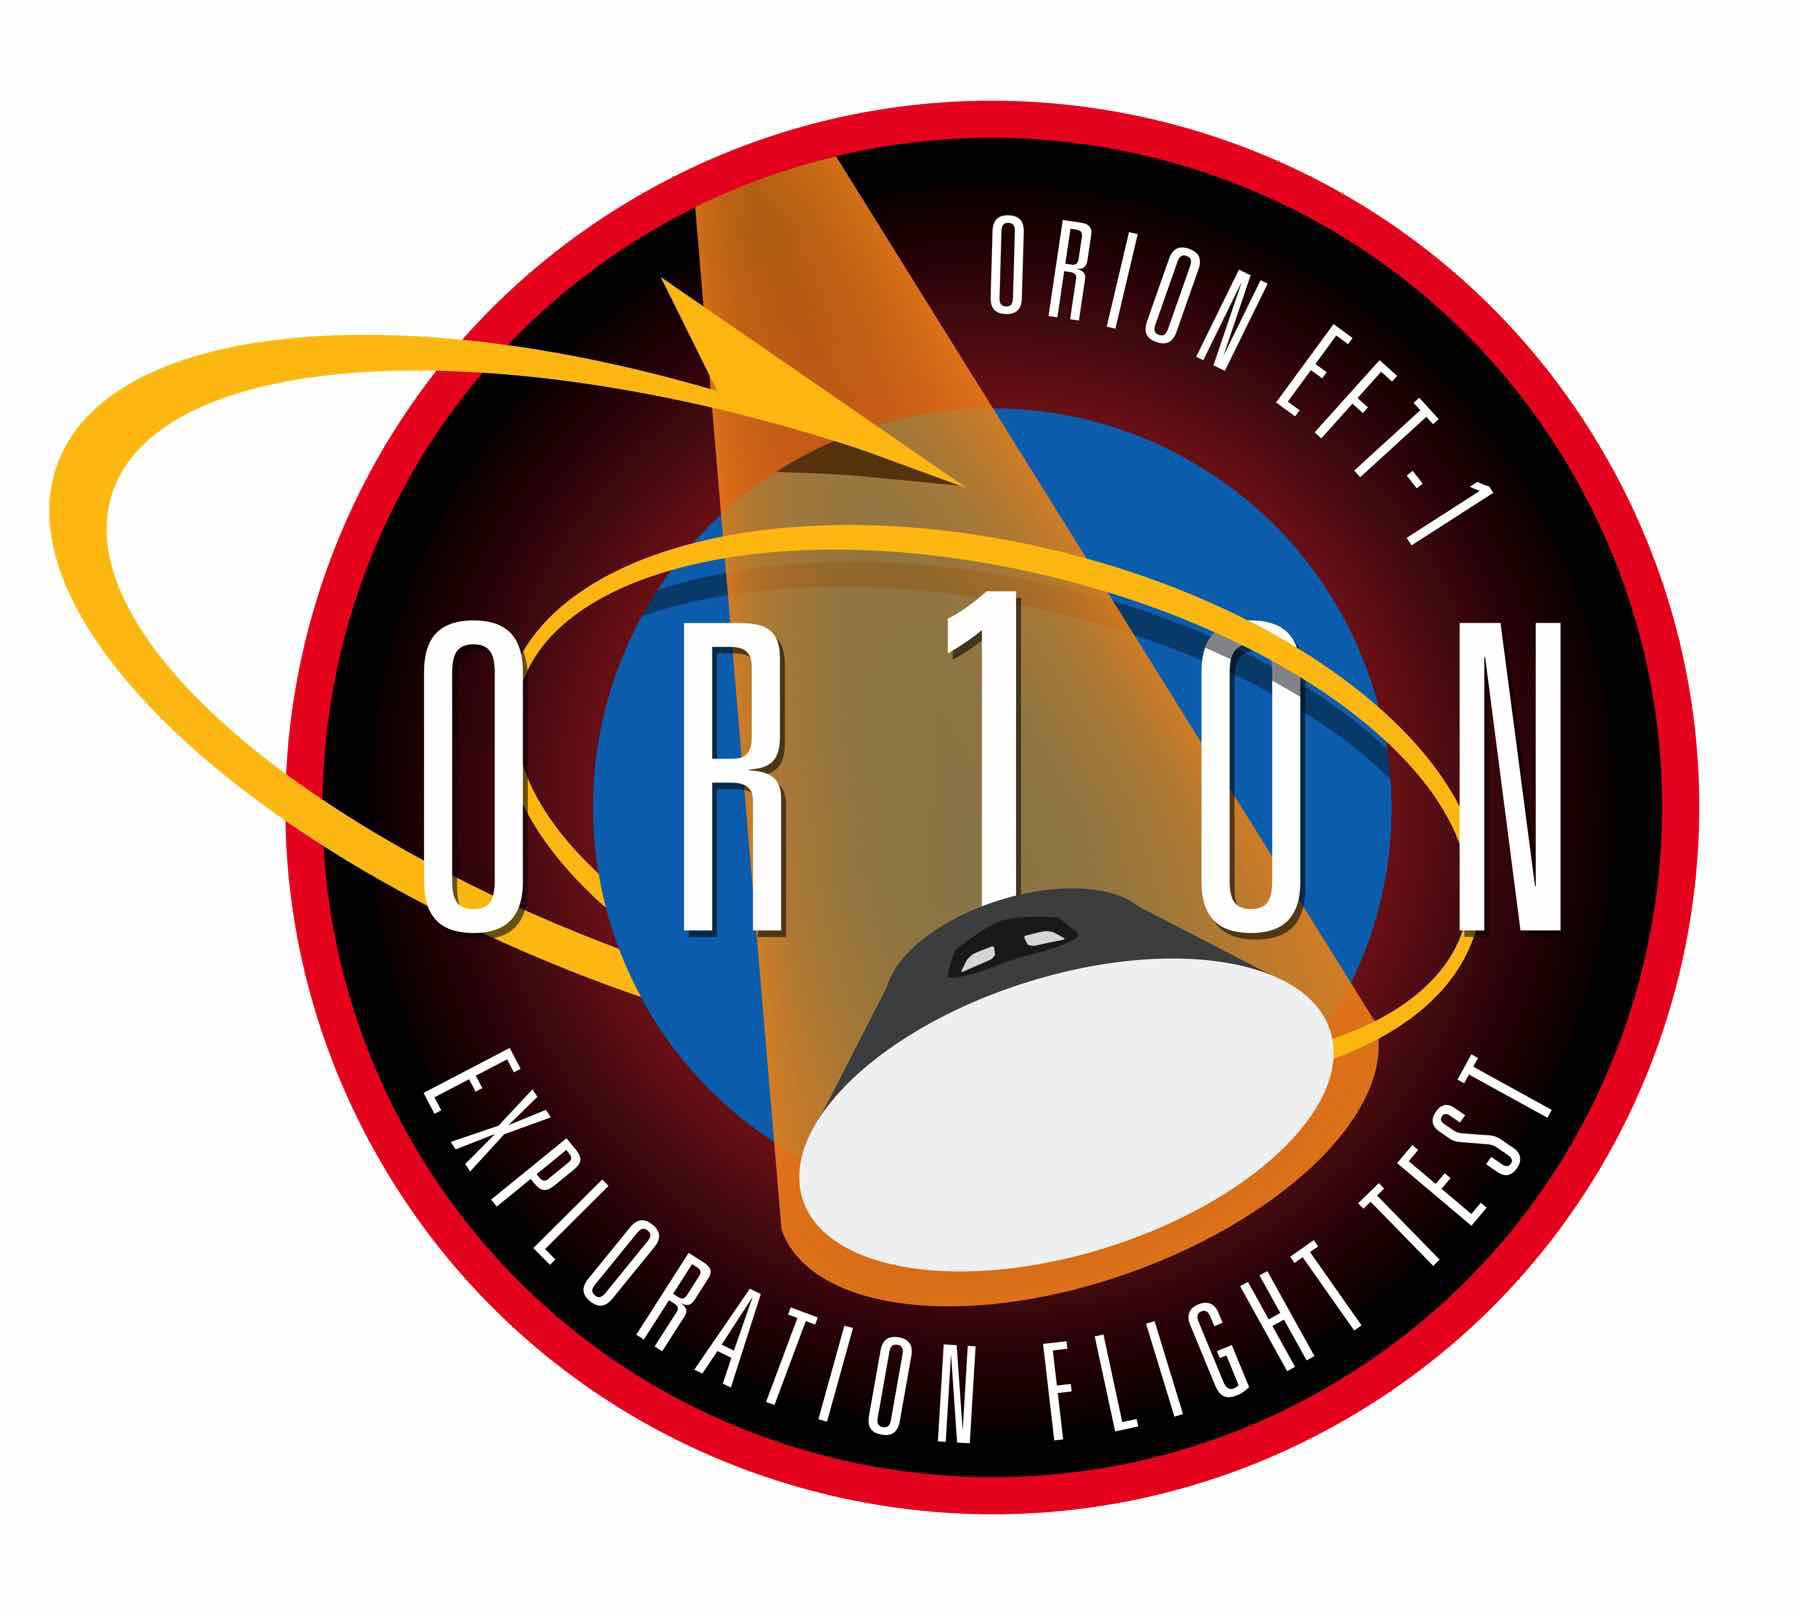 Orion Test Flight 'mission patch'.